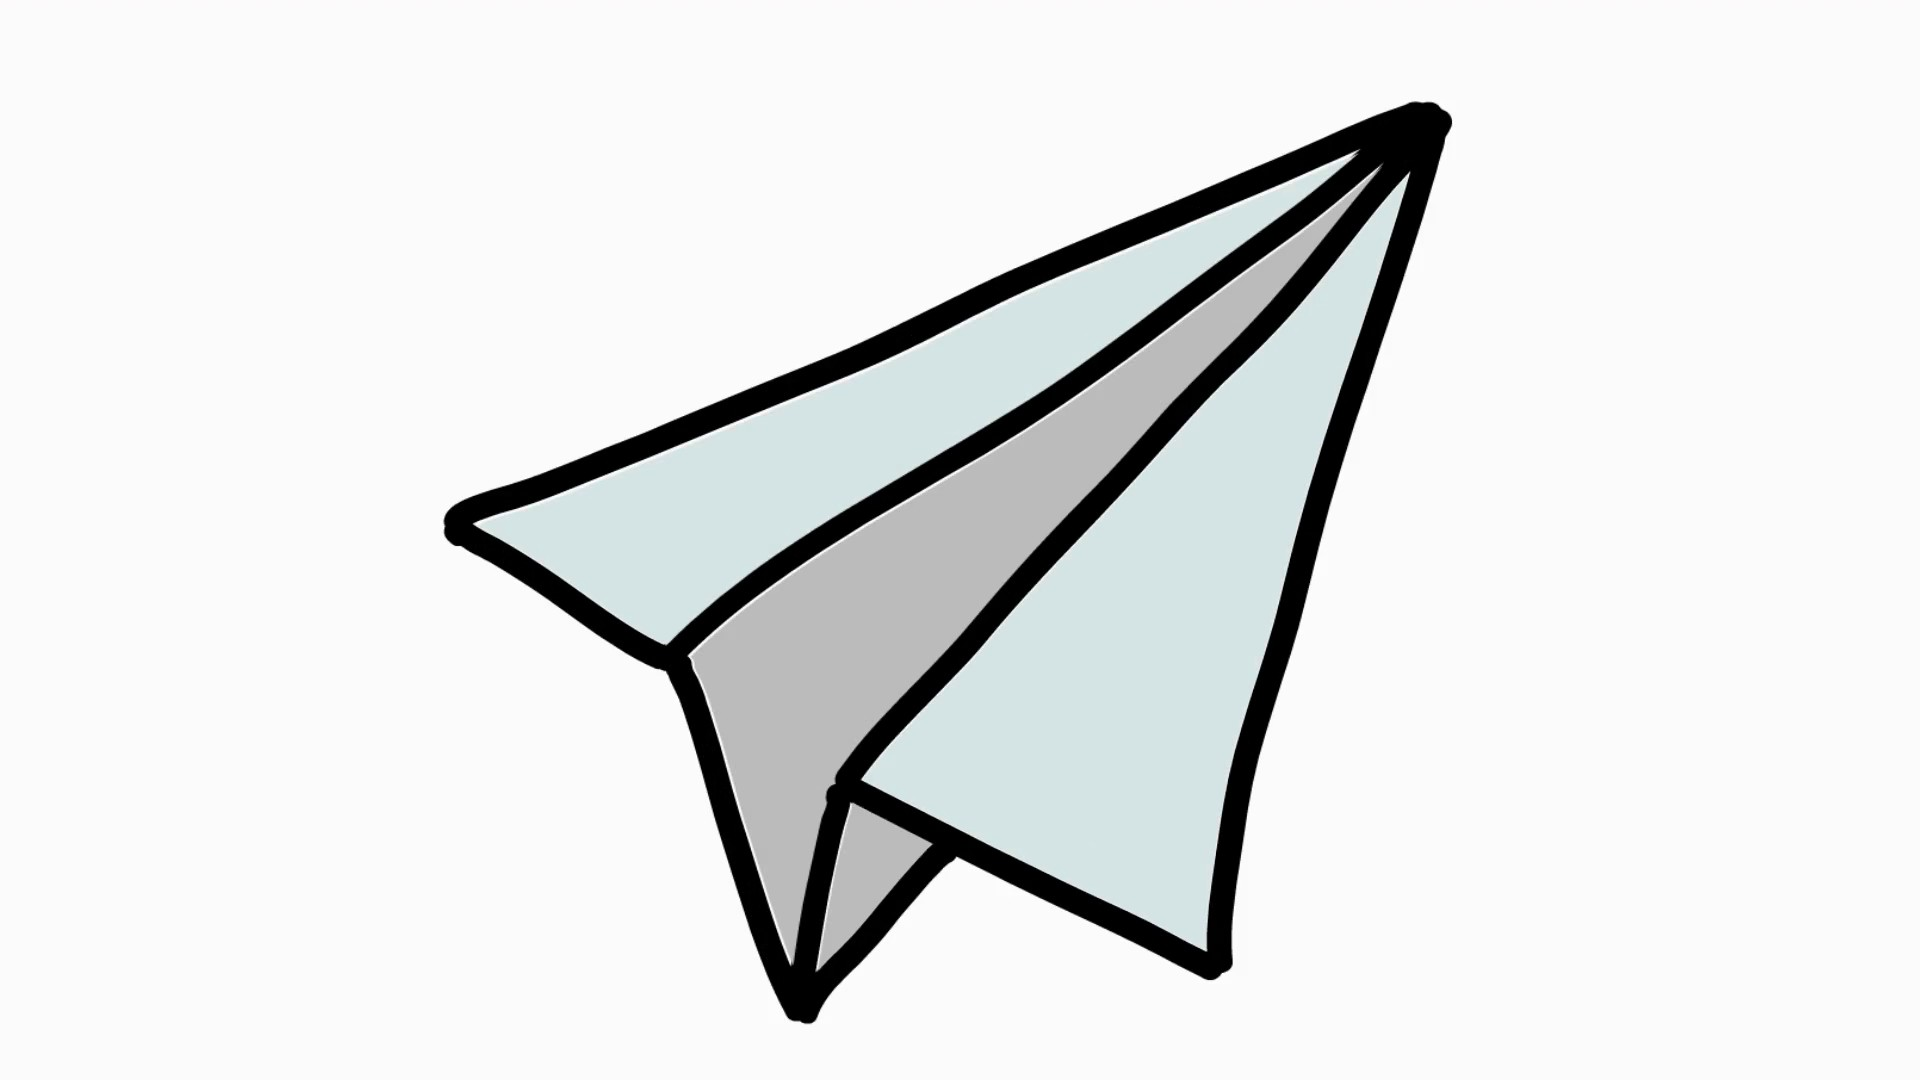 Paper Airplane background picture hd